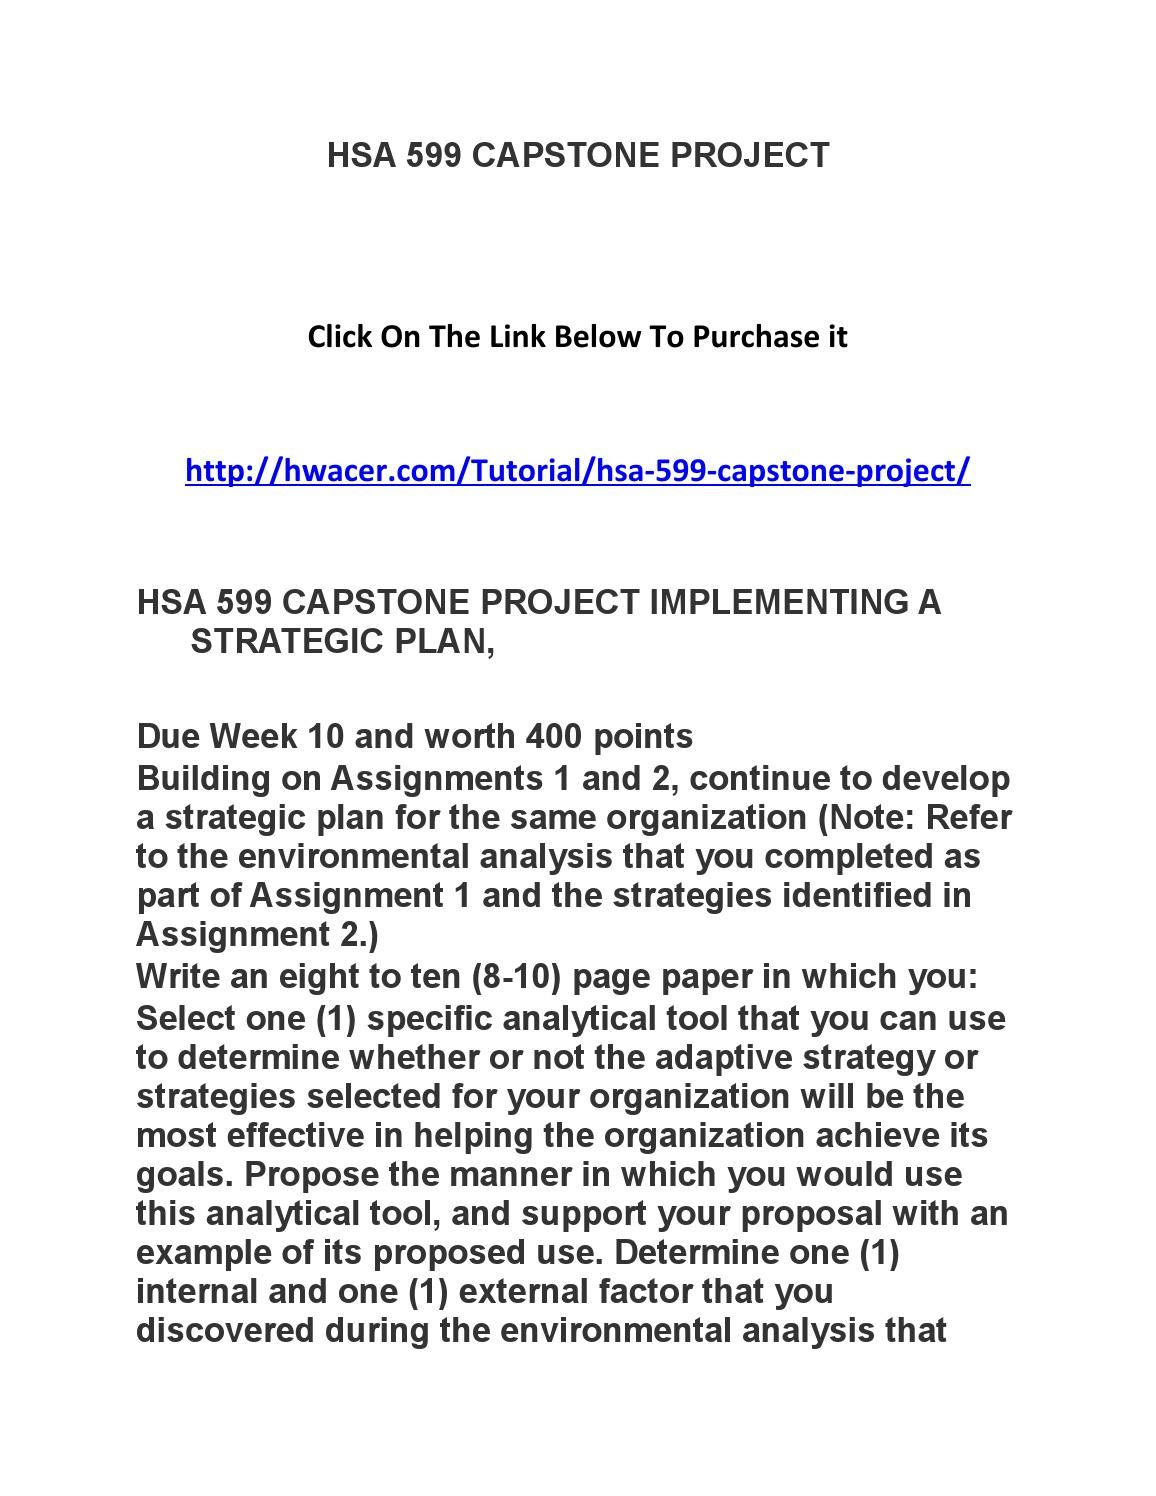 hsa 599 capstone project implementing a strategic plan